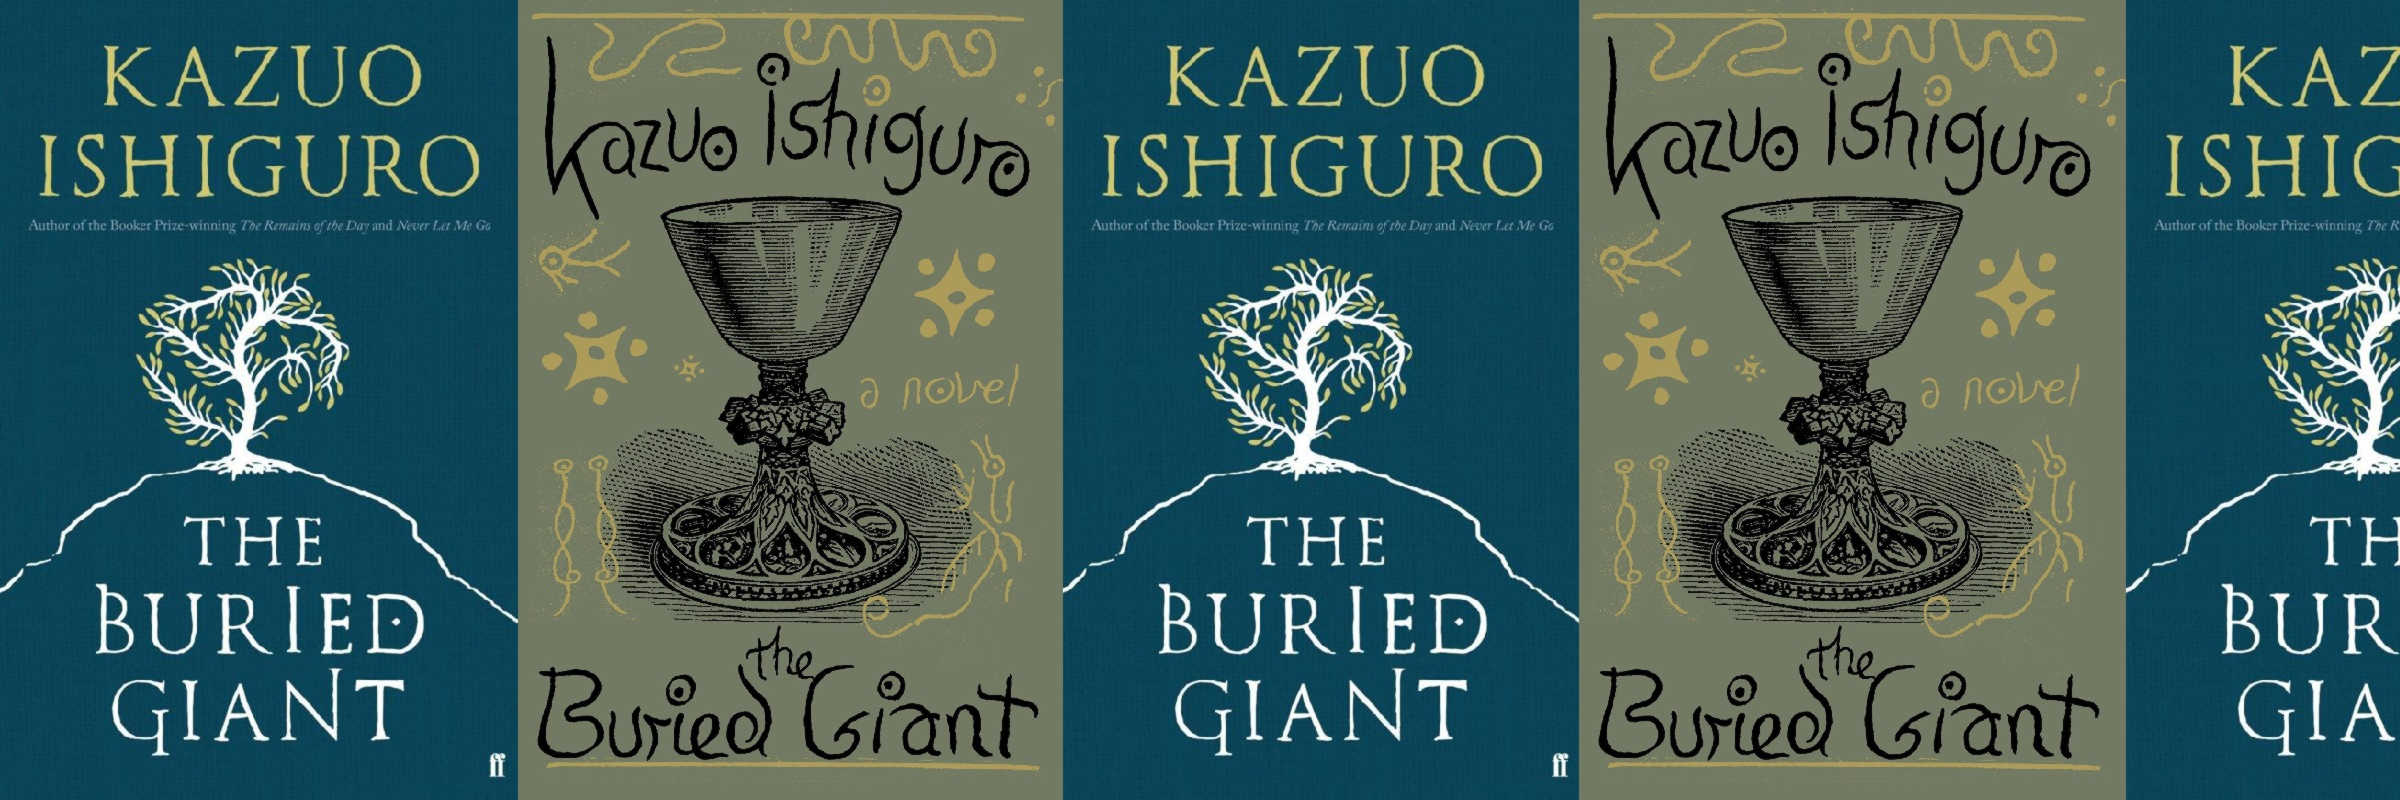 Book covers of the Buried Giant